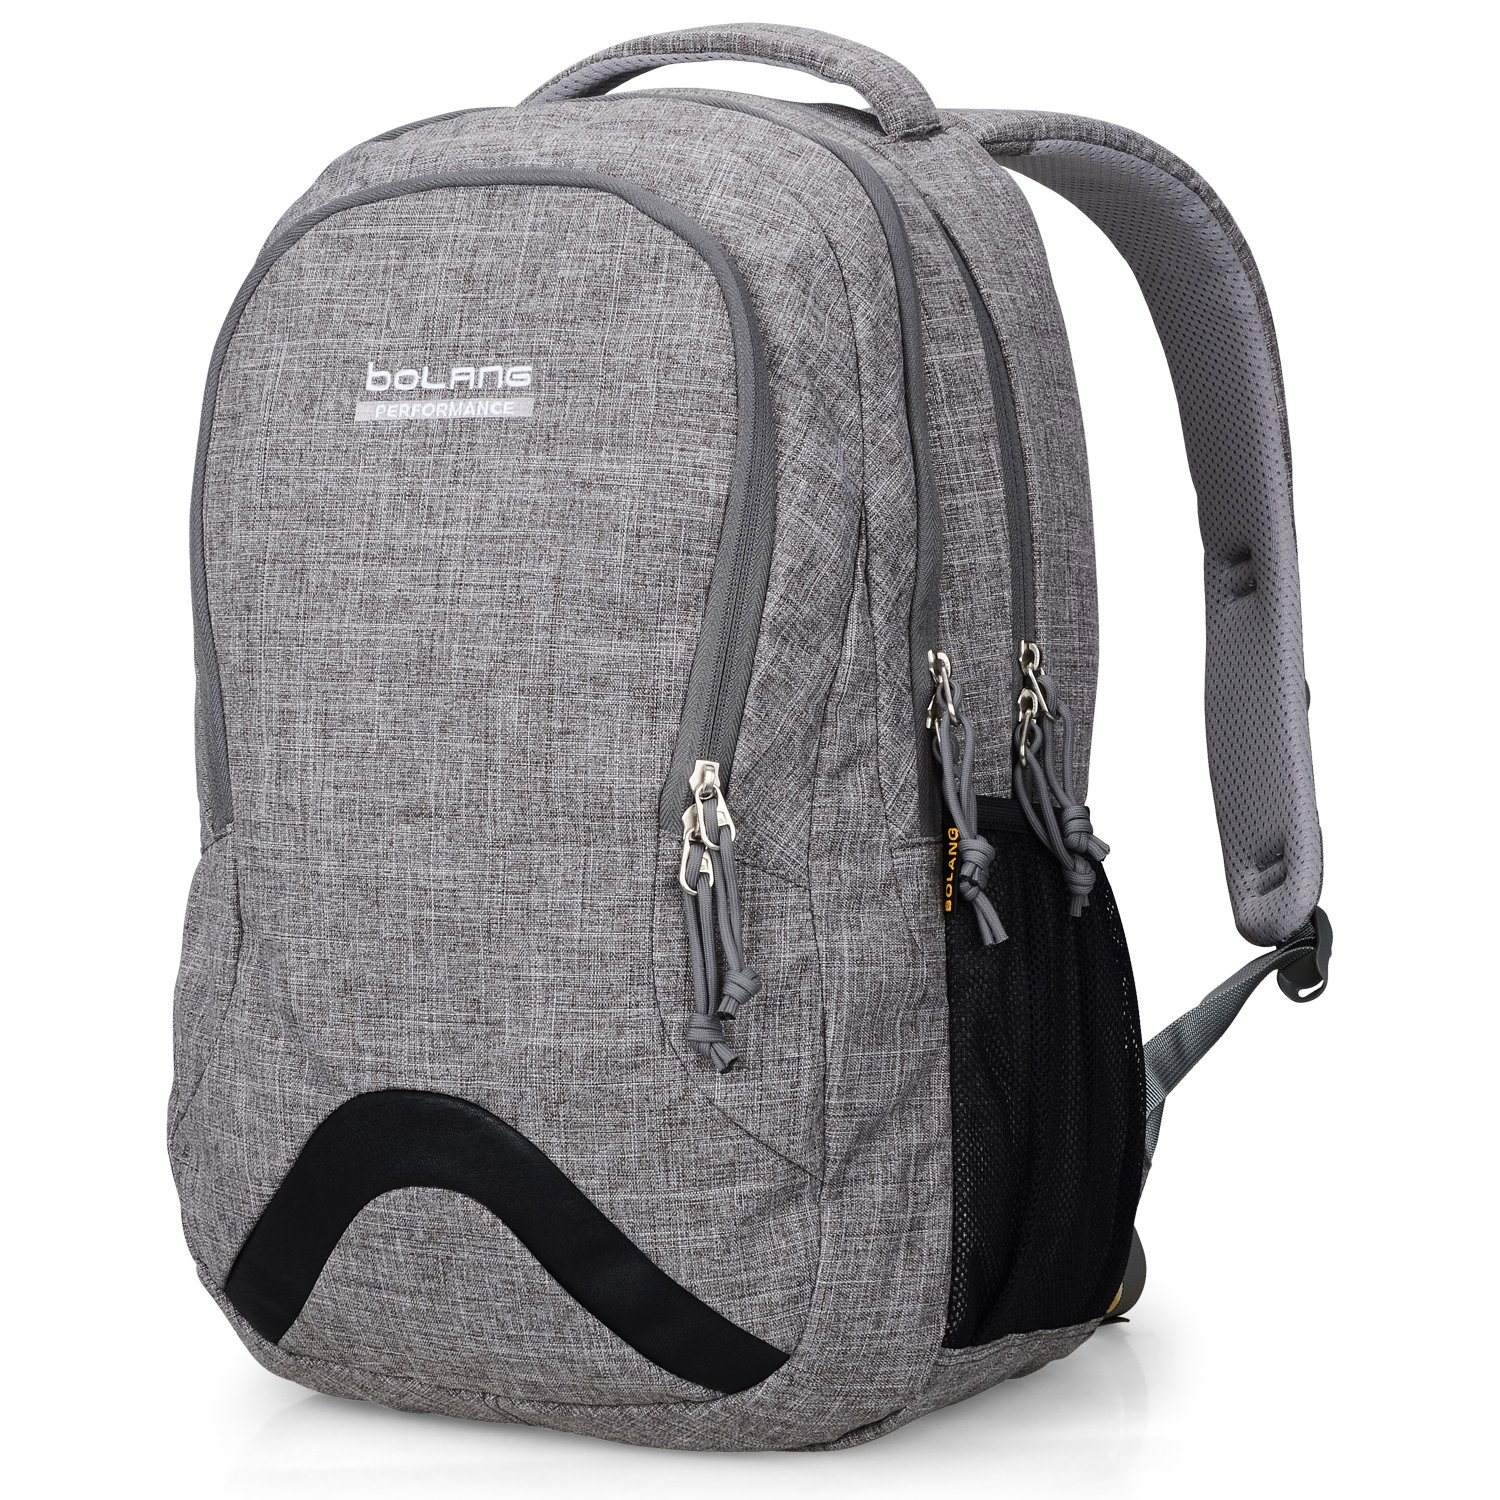 bolang water resistant nylon backpack school college